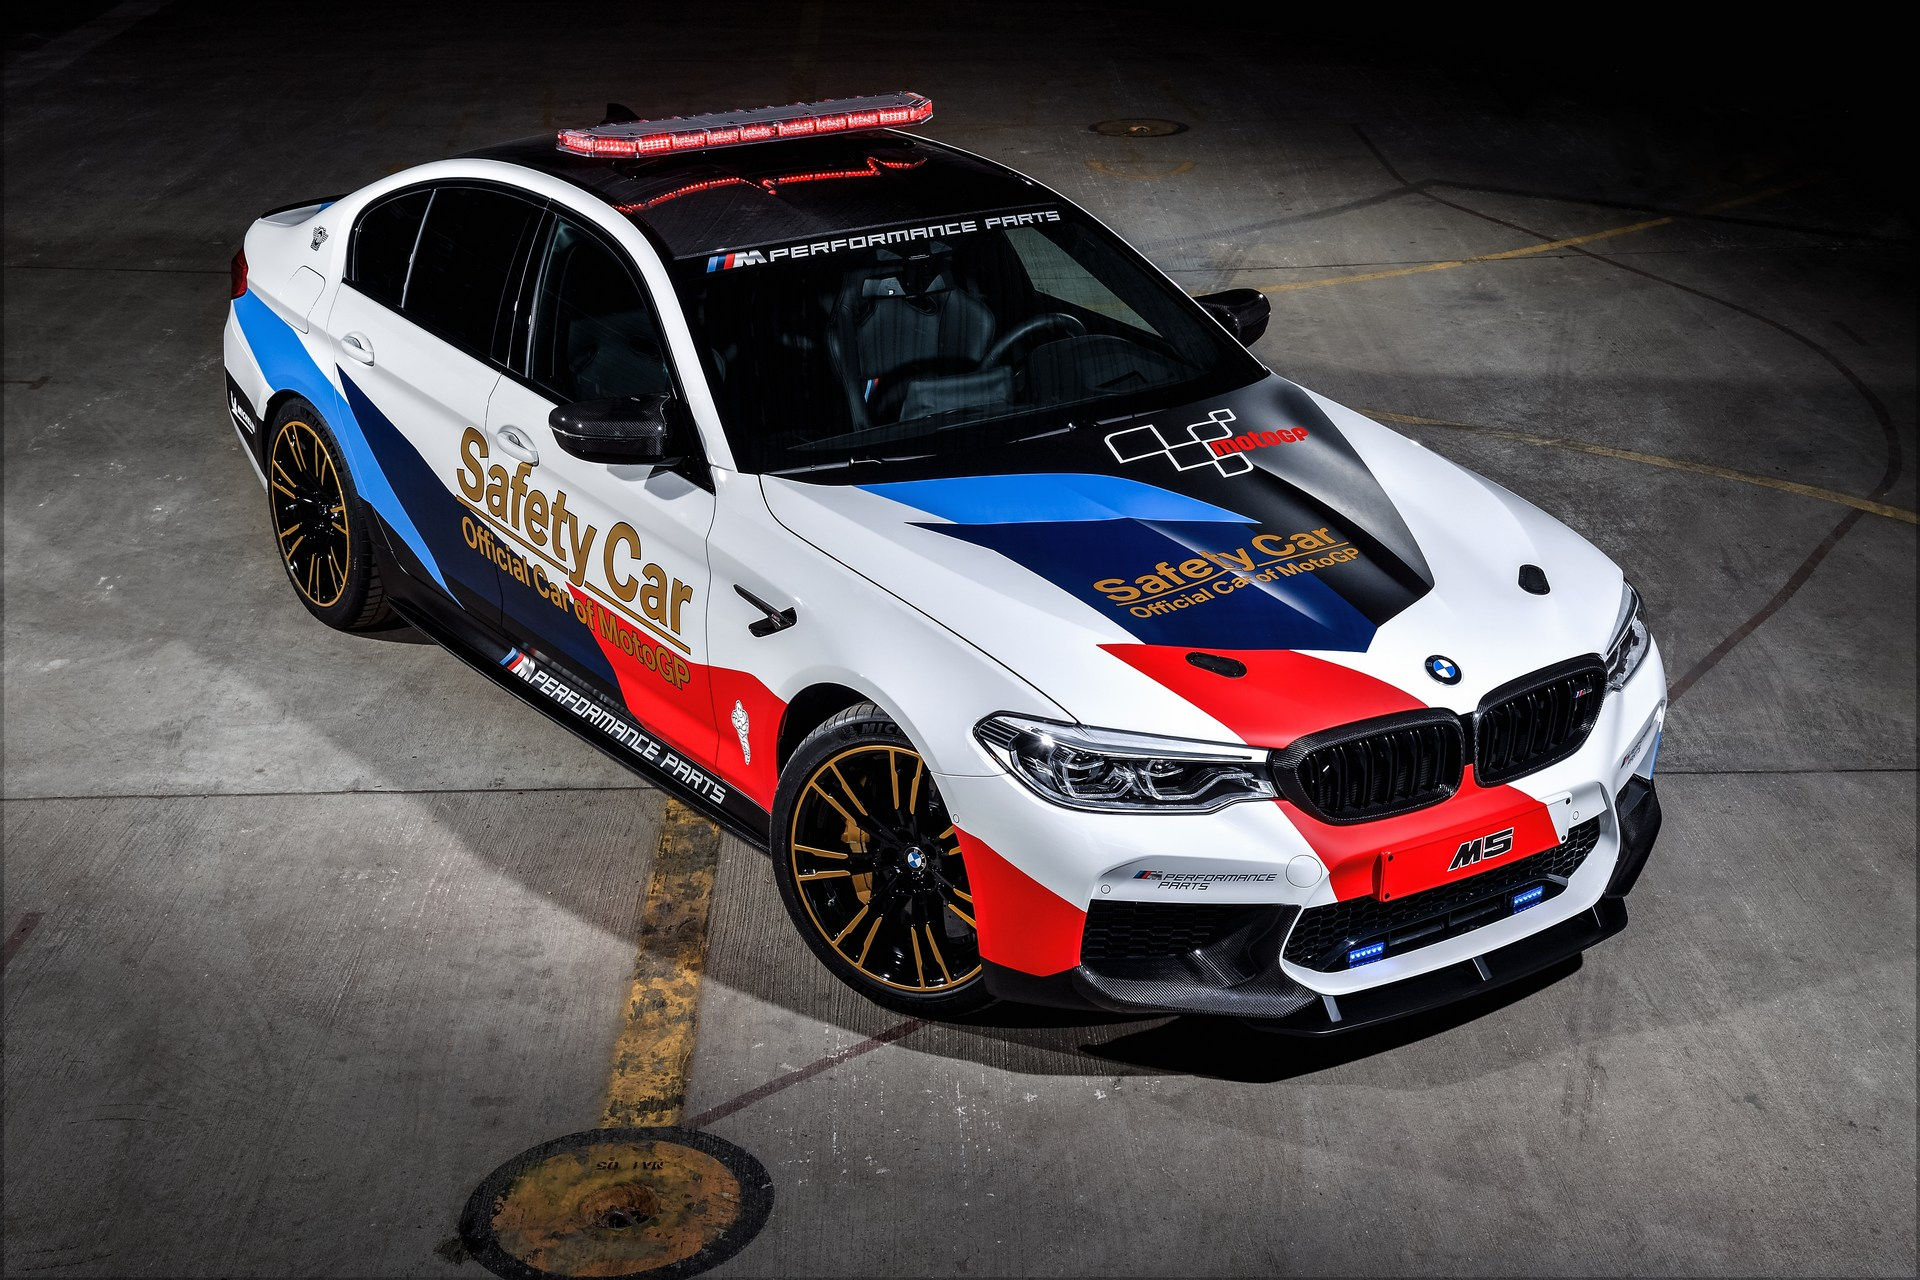 BMW_M5_Safety_Car_0003